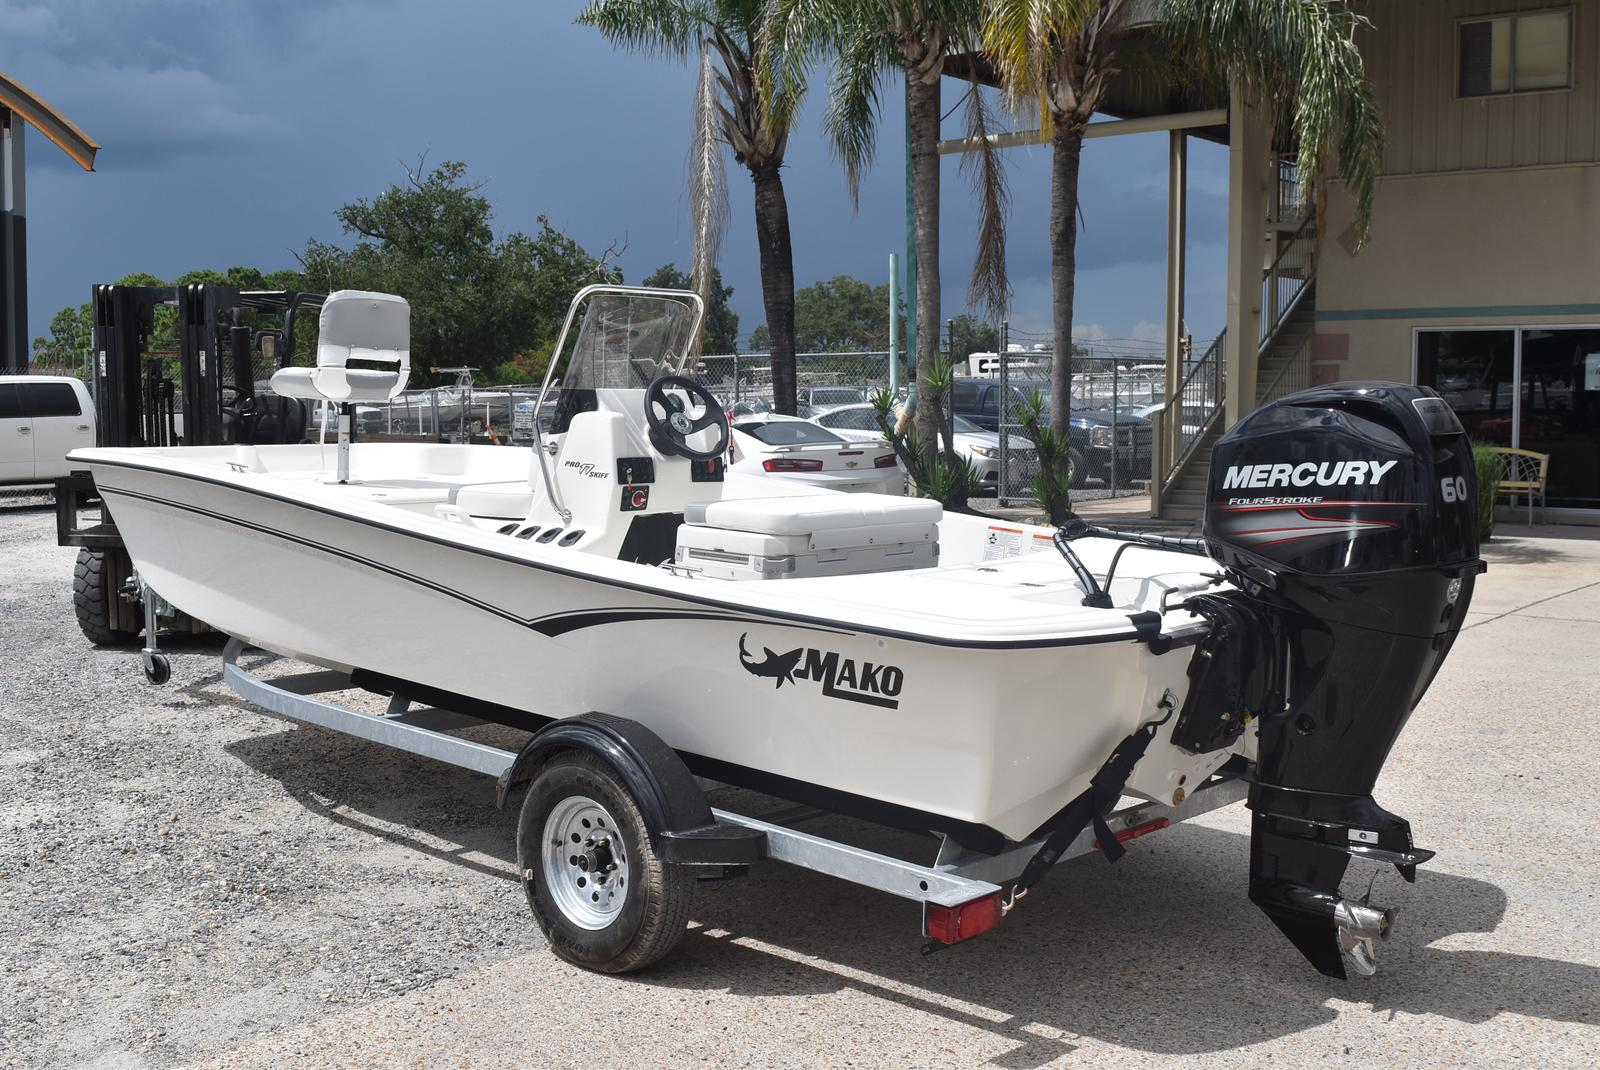 2020 Mako boat for sale, model of the boat is Pro Skiff 17, 75 ELPT & Image # 206 of 702